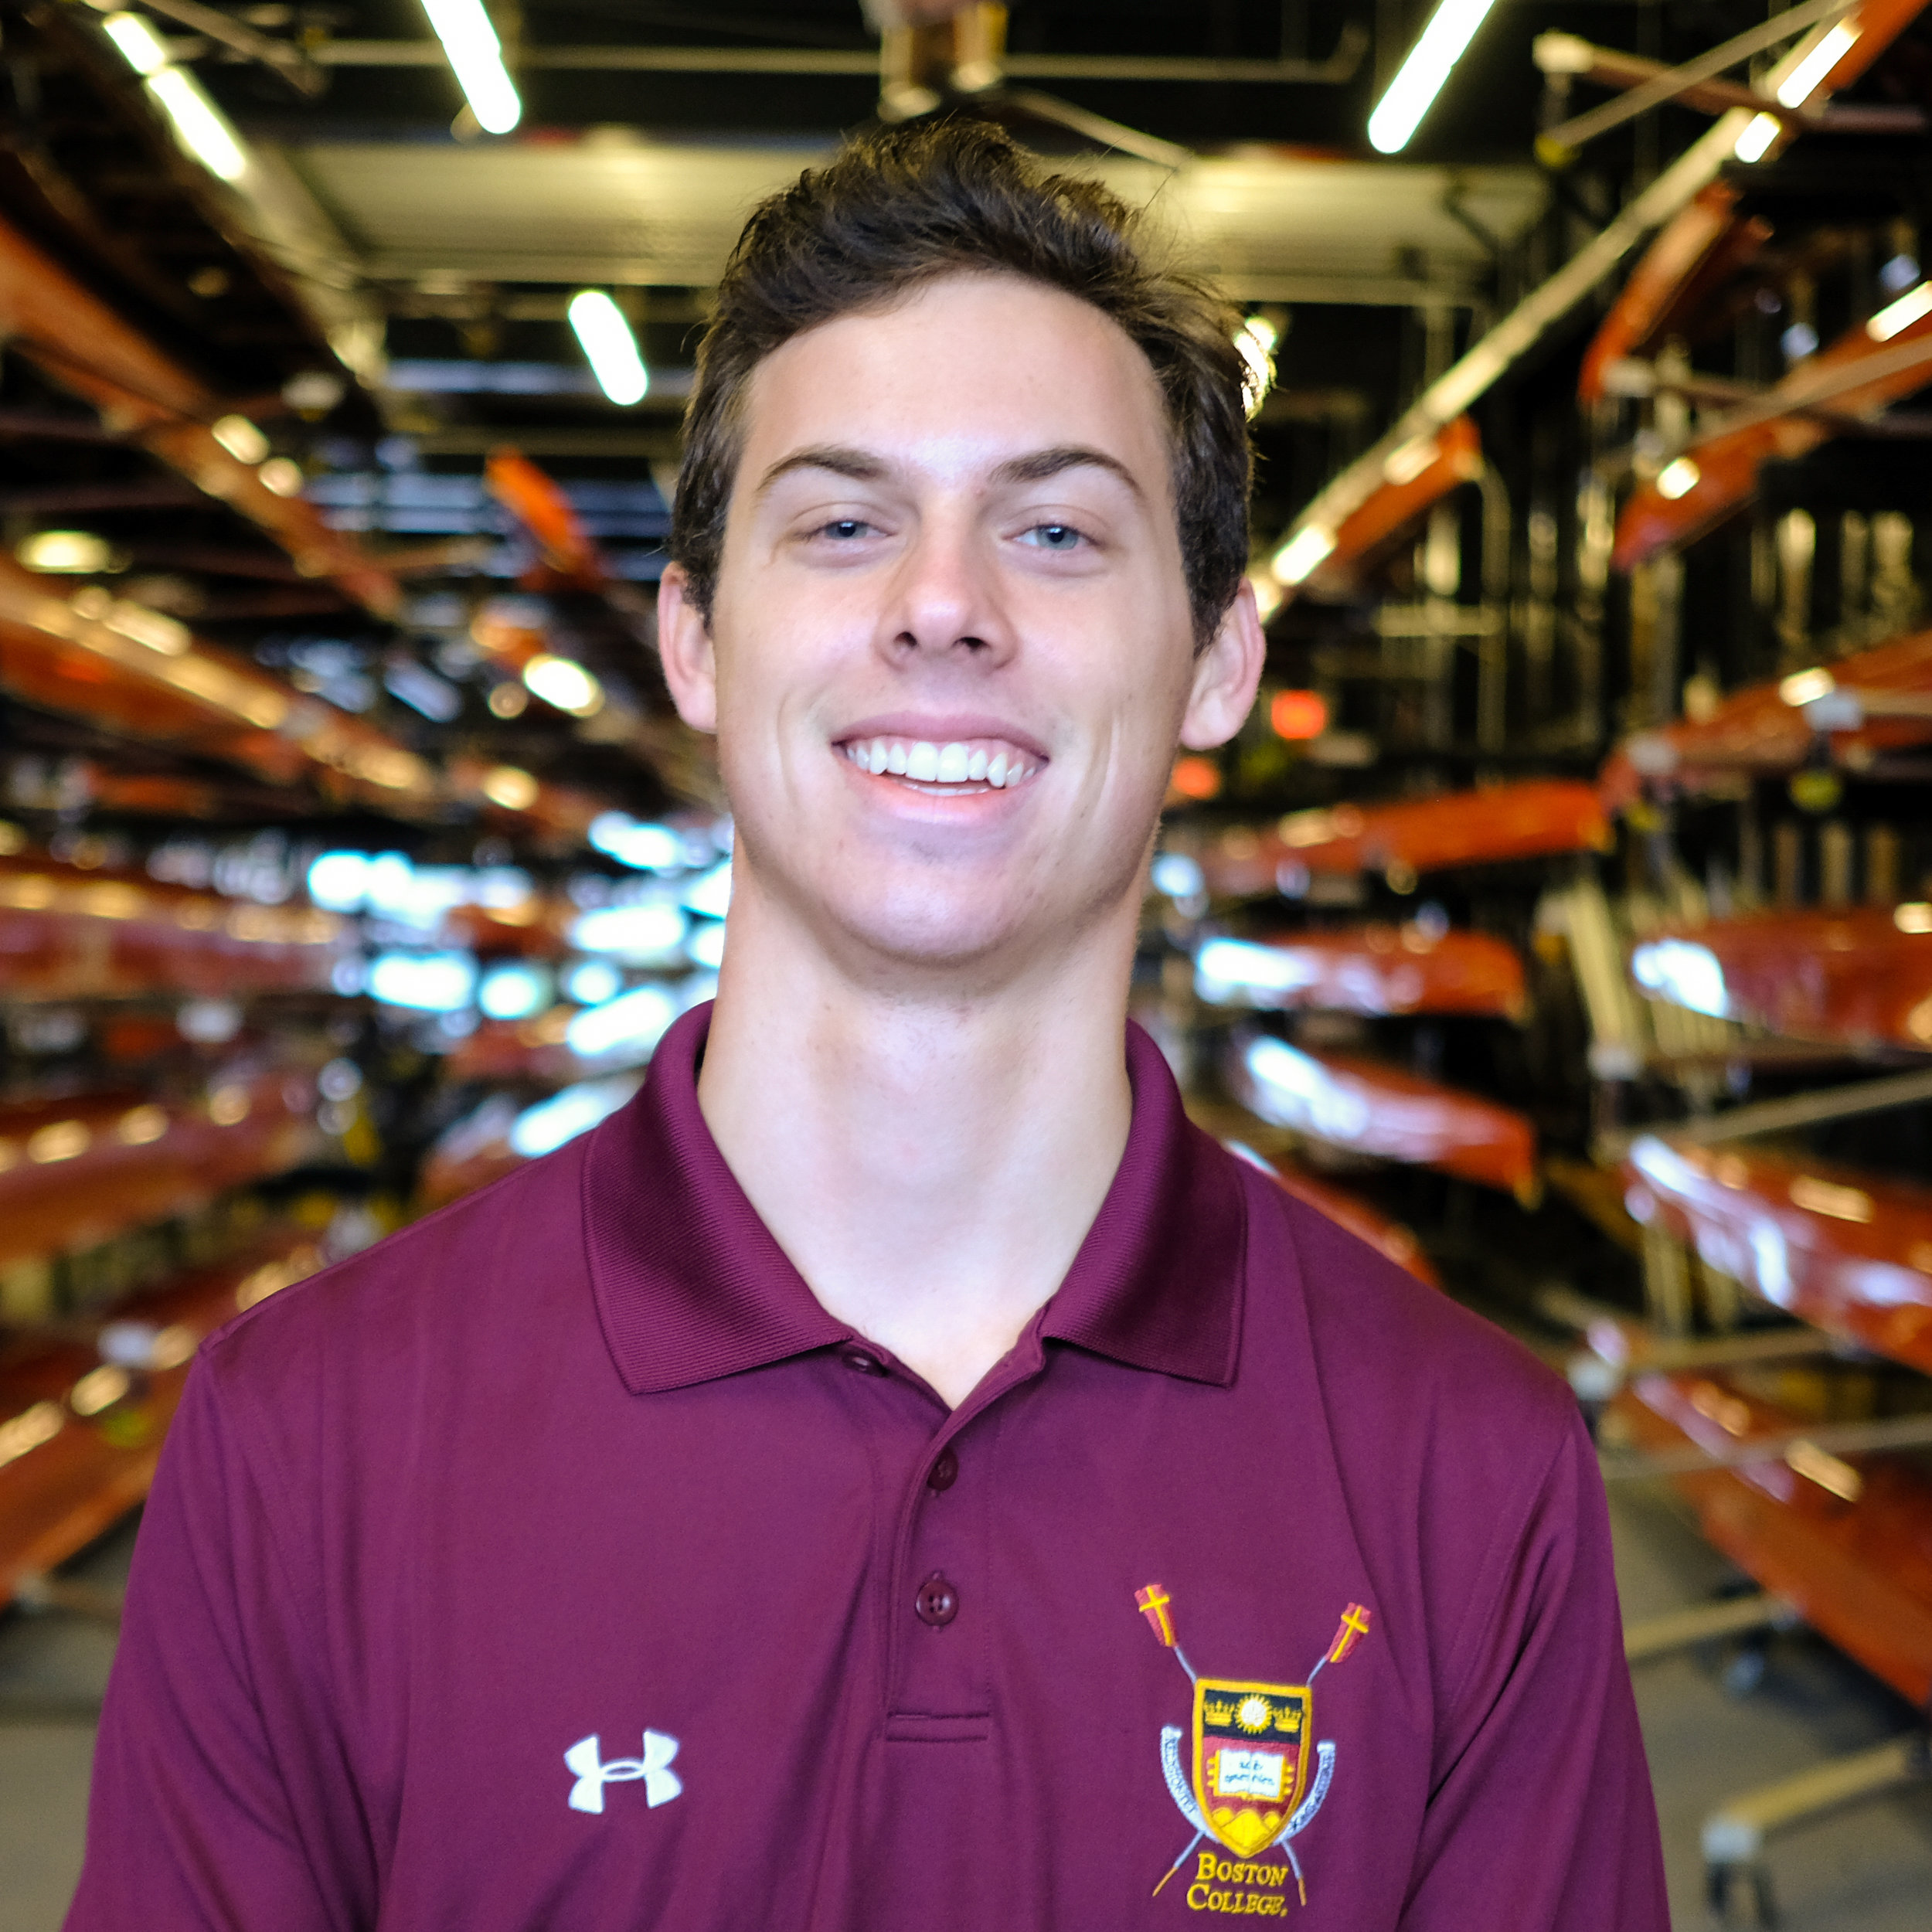 """Ian McPheters - Hometown: Wilmington, NCClass: 2022Height: 5'10"""" Weight: 155Bio: Ian is from Wilmington, North Carolina. He began rowing during his senior year at The Bolles School in Jacksonville, Florida, after eleven years of swimming competitively. He is a political science major."""